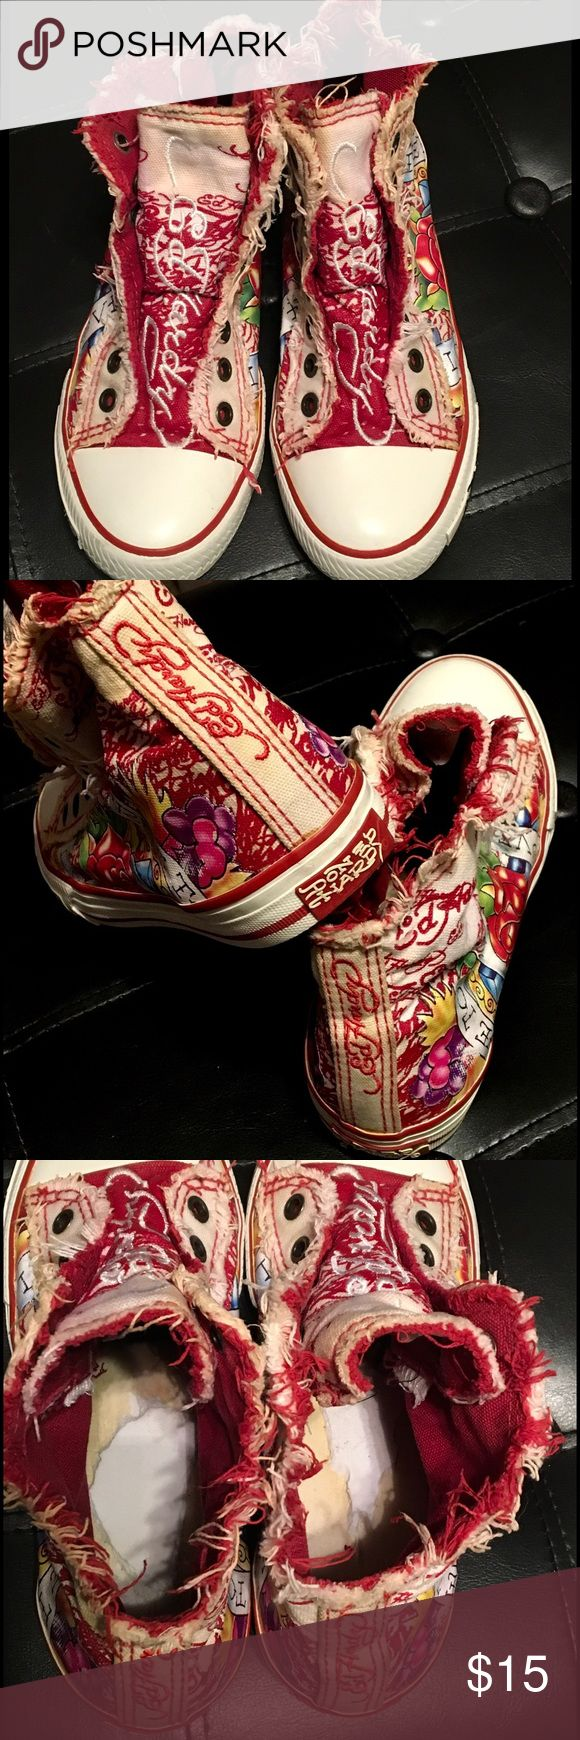 Ed Hardy stressed converse style shoes Ed Hardy stressed look converse style shoesshoelace free, these are the perfect slip on shoes!  Unique style absolutely love!  Original insoles were removed.  Price reflects used condition. Ed Hardy Shoes Sneakers